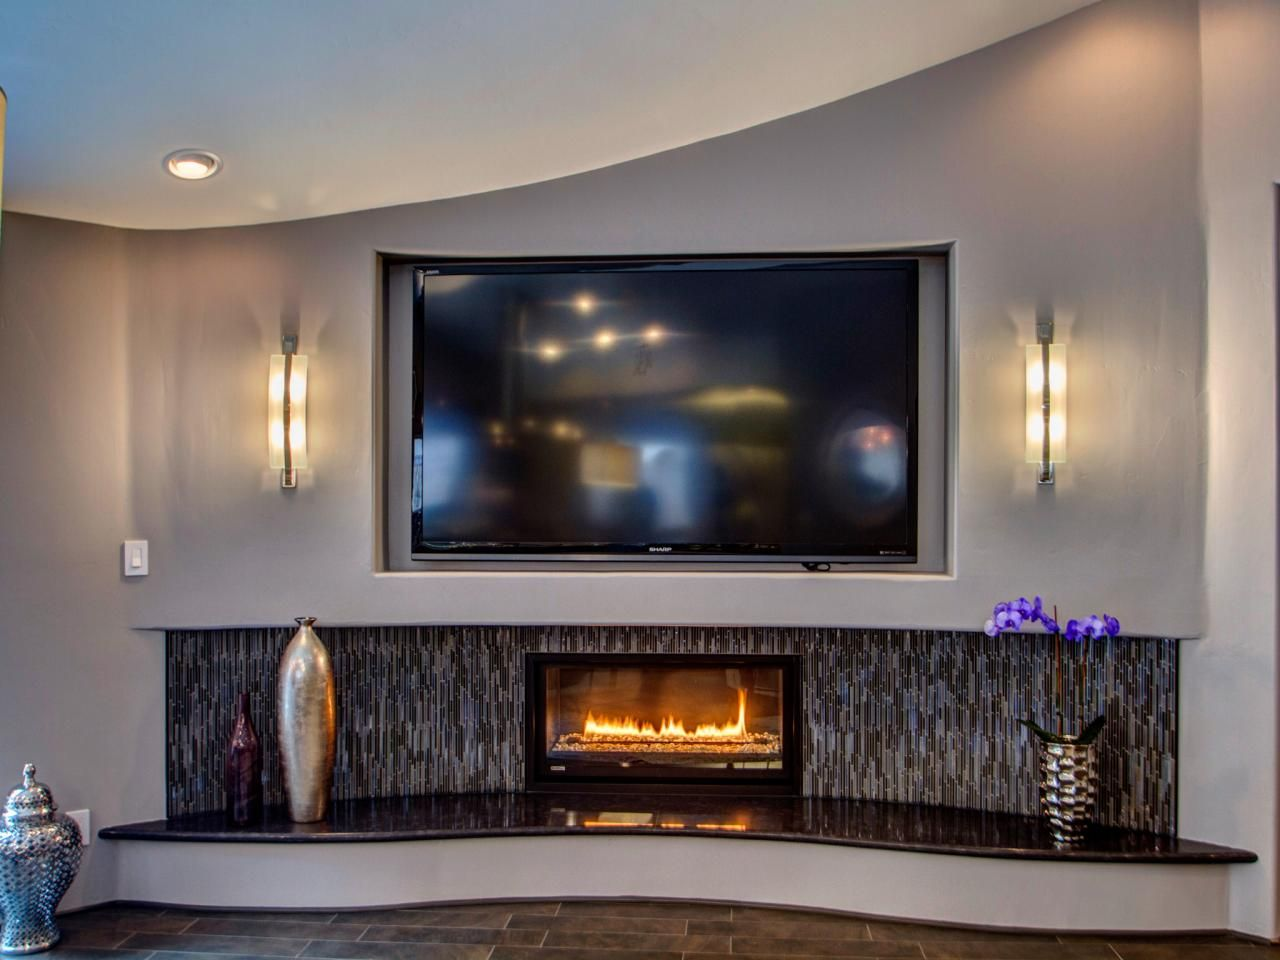 Living Room With Art Deco-Inspired Gas Fireplace